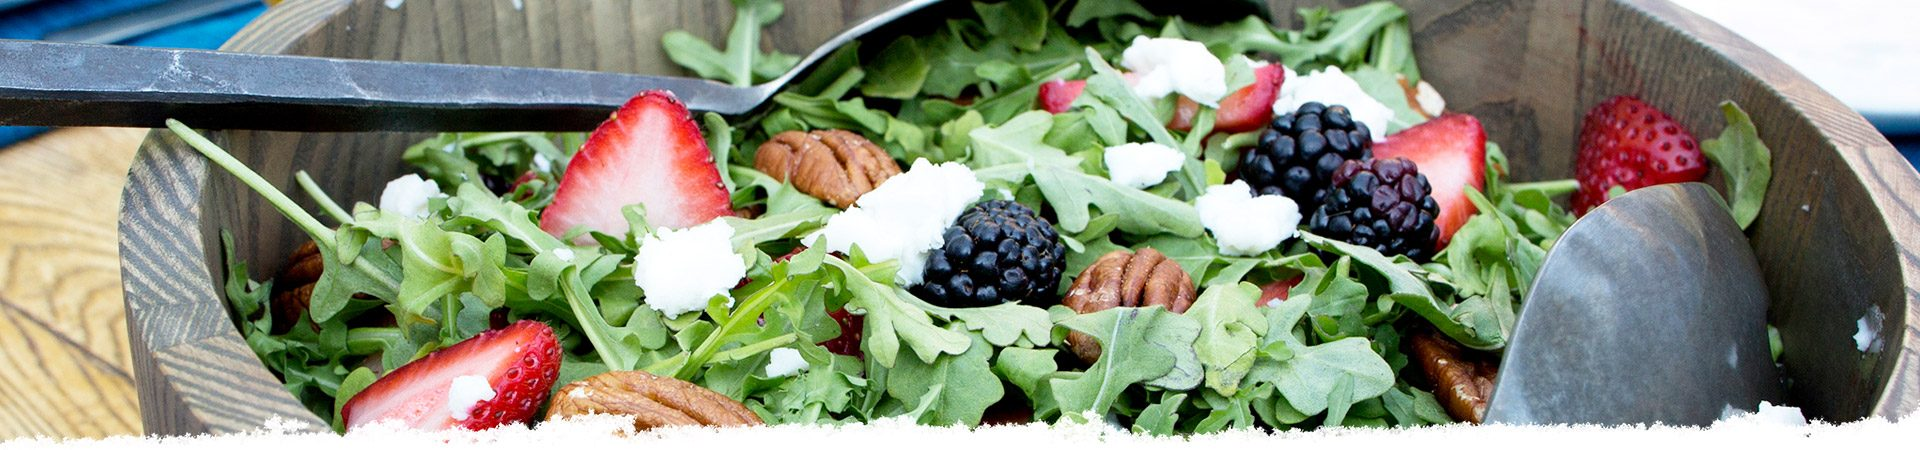 Arugula Salad with Goat Cheese, Berries, and Pecans